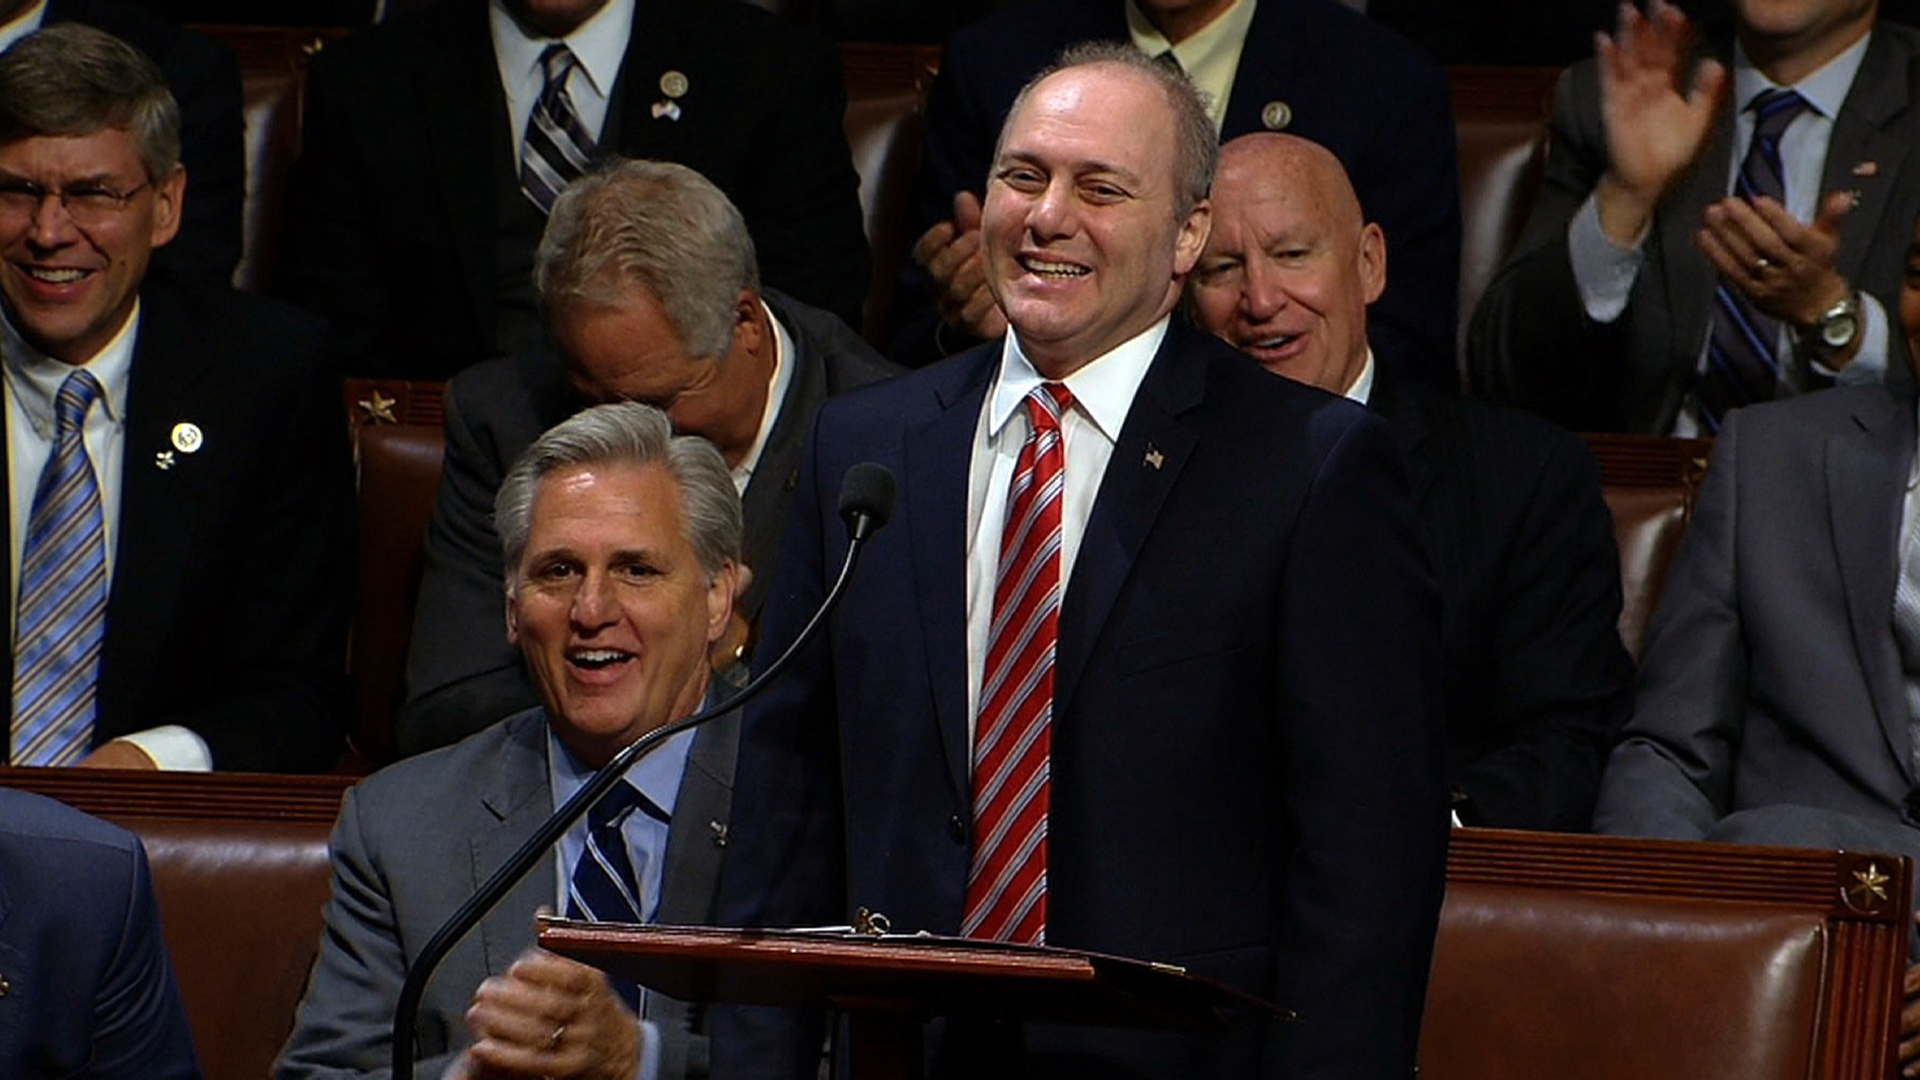 Steve Scalise returns to House-159532.jpg67423890